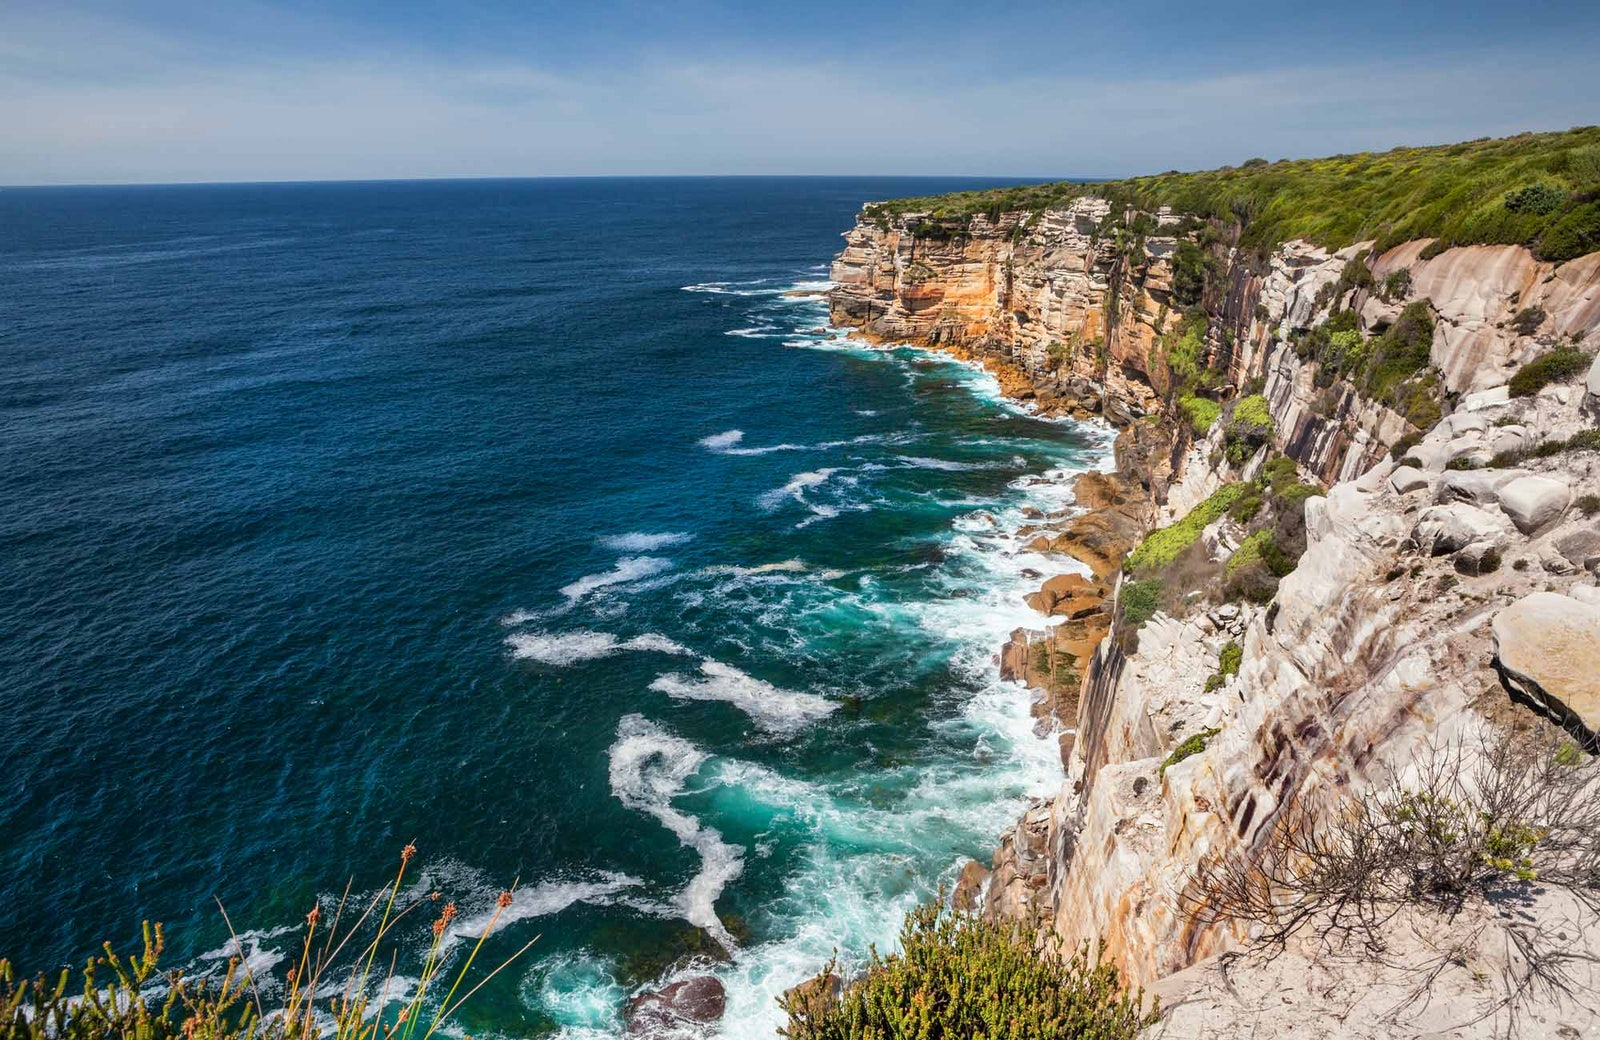 A picture of the cliffs in Sydney near Surry Hills